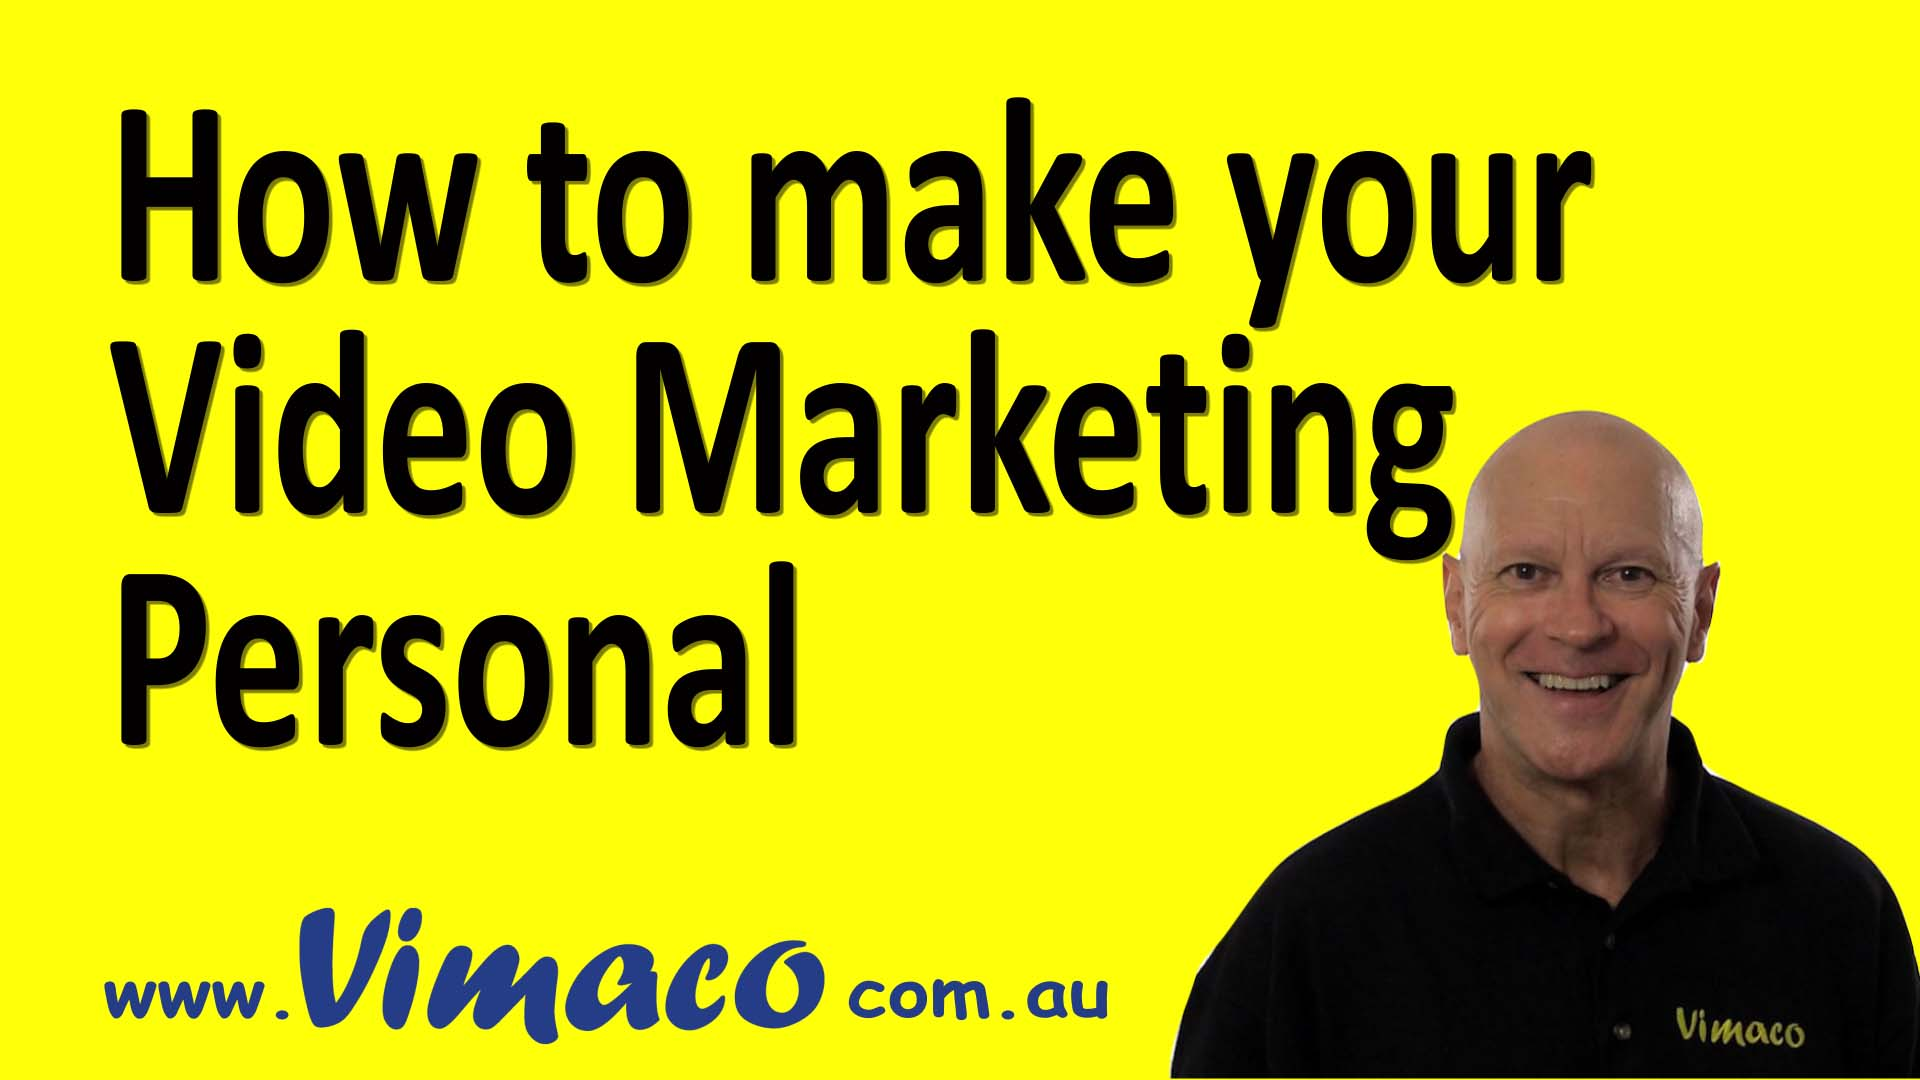 How to Make your Video Marketing Personal